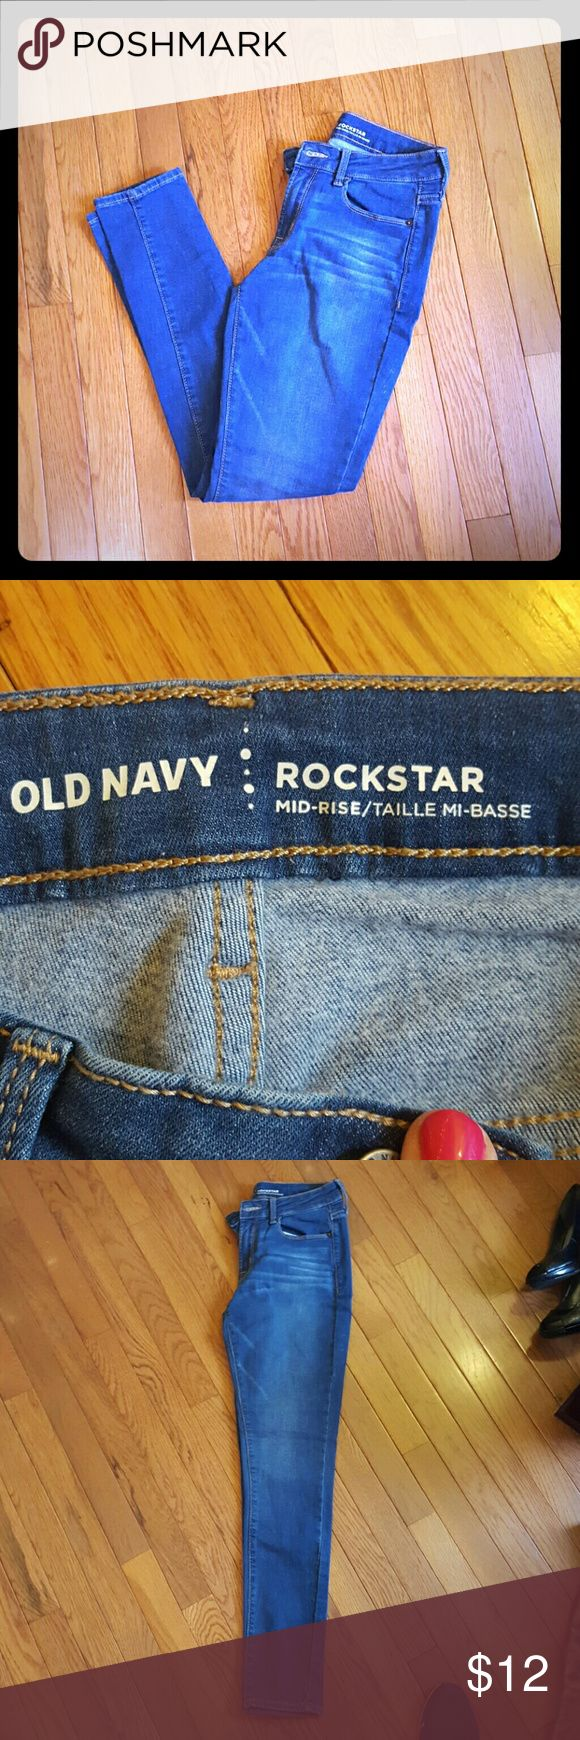 Old Navy Rockstar Jeans Excellent used condition from a smoke free clean home. Size 4 regular. Old Navy Jeans Skinny